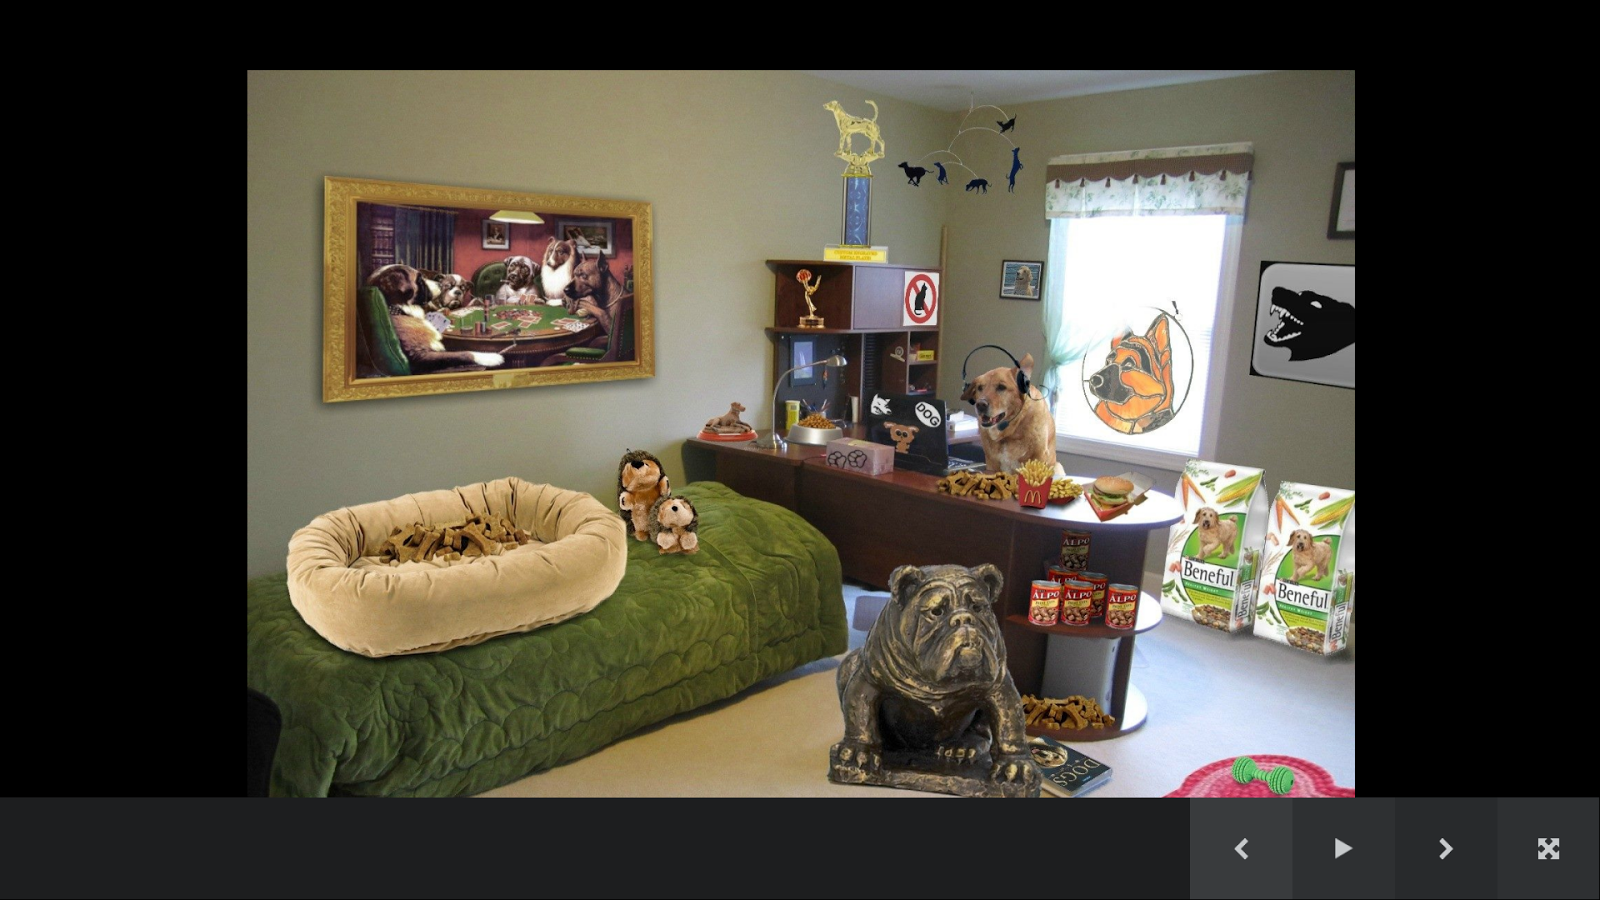 Dog Room Decor 1.2 APK Download - Android Lifestyle Apps